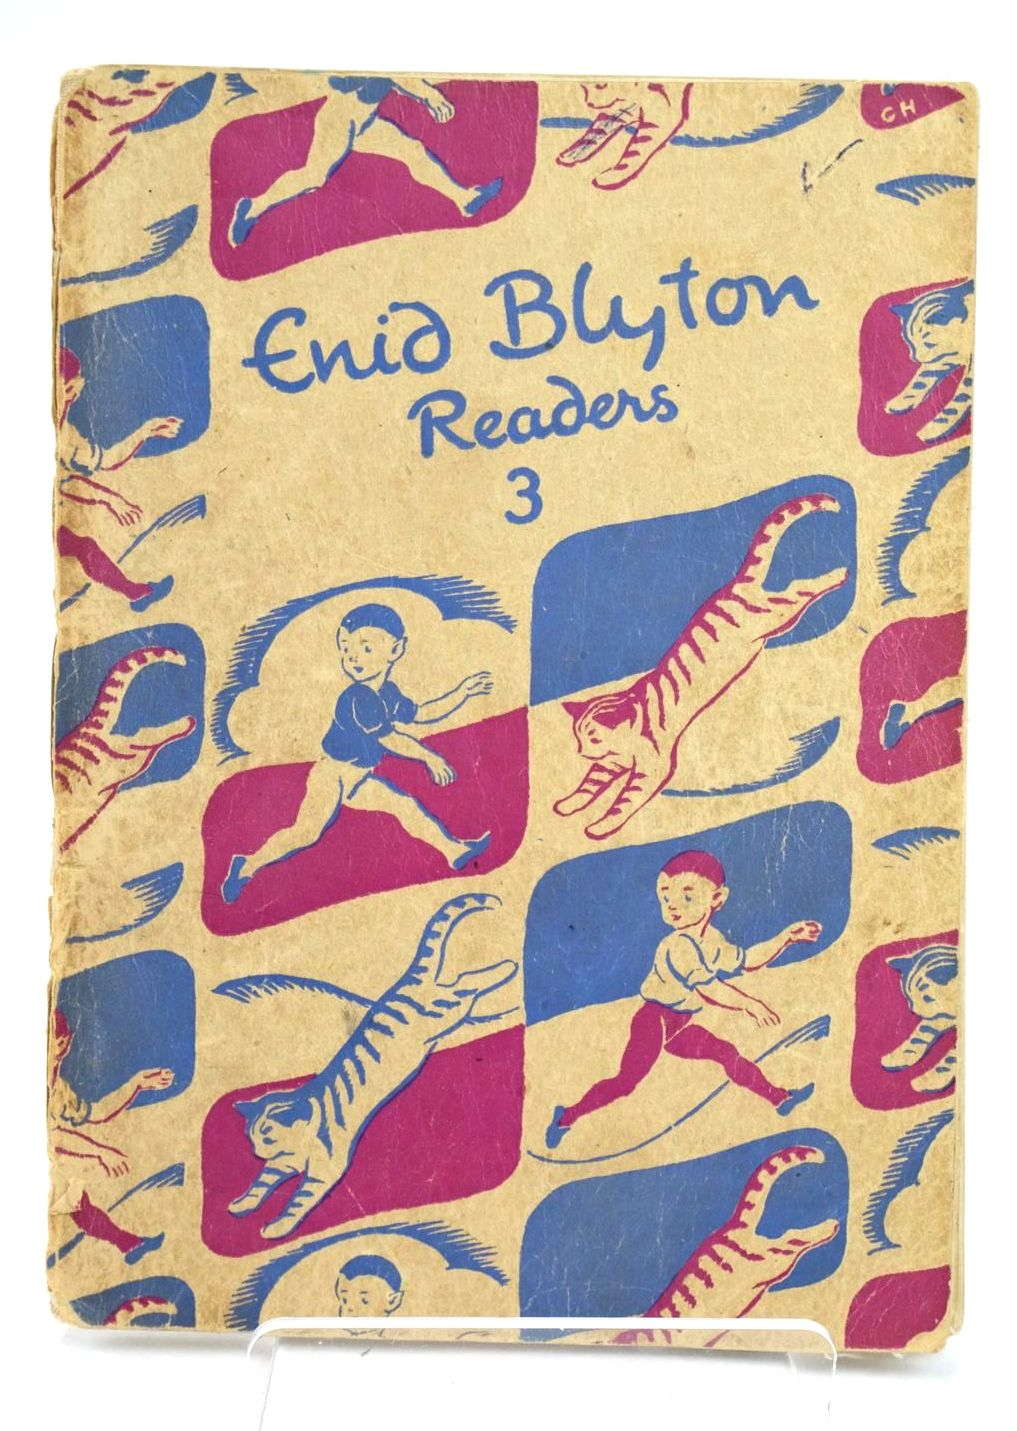 Photo of ENID BLYTON READERS 3 written by Blyton, Enid illustrated by Soper, Eileen published by Macmillan & Co. Ltd. (STOCK CODE: 1318987)  for sale by Stella & Rose's Books